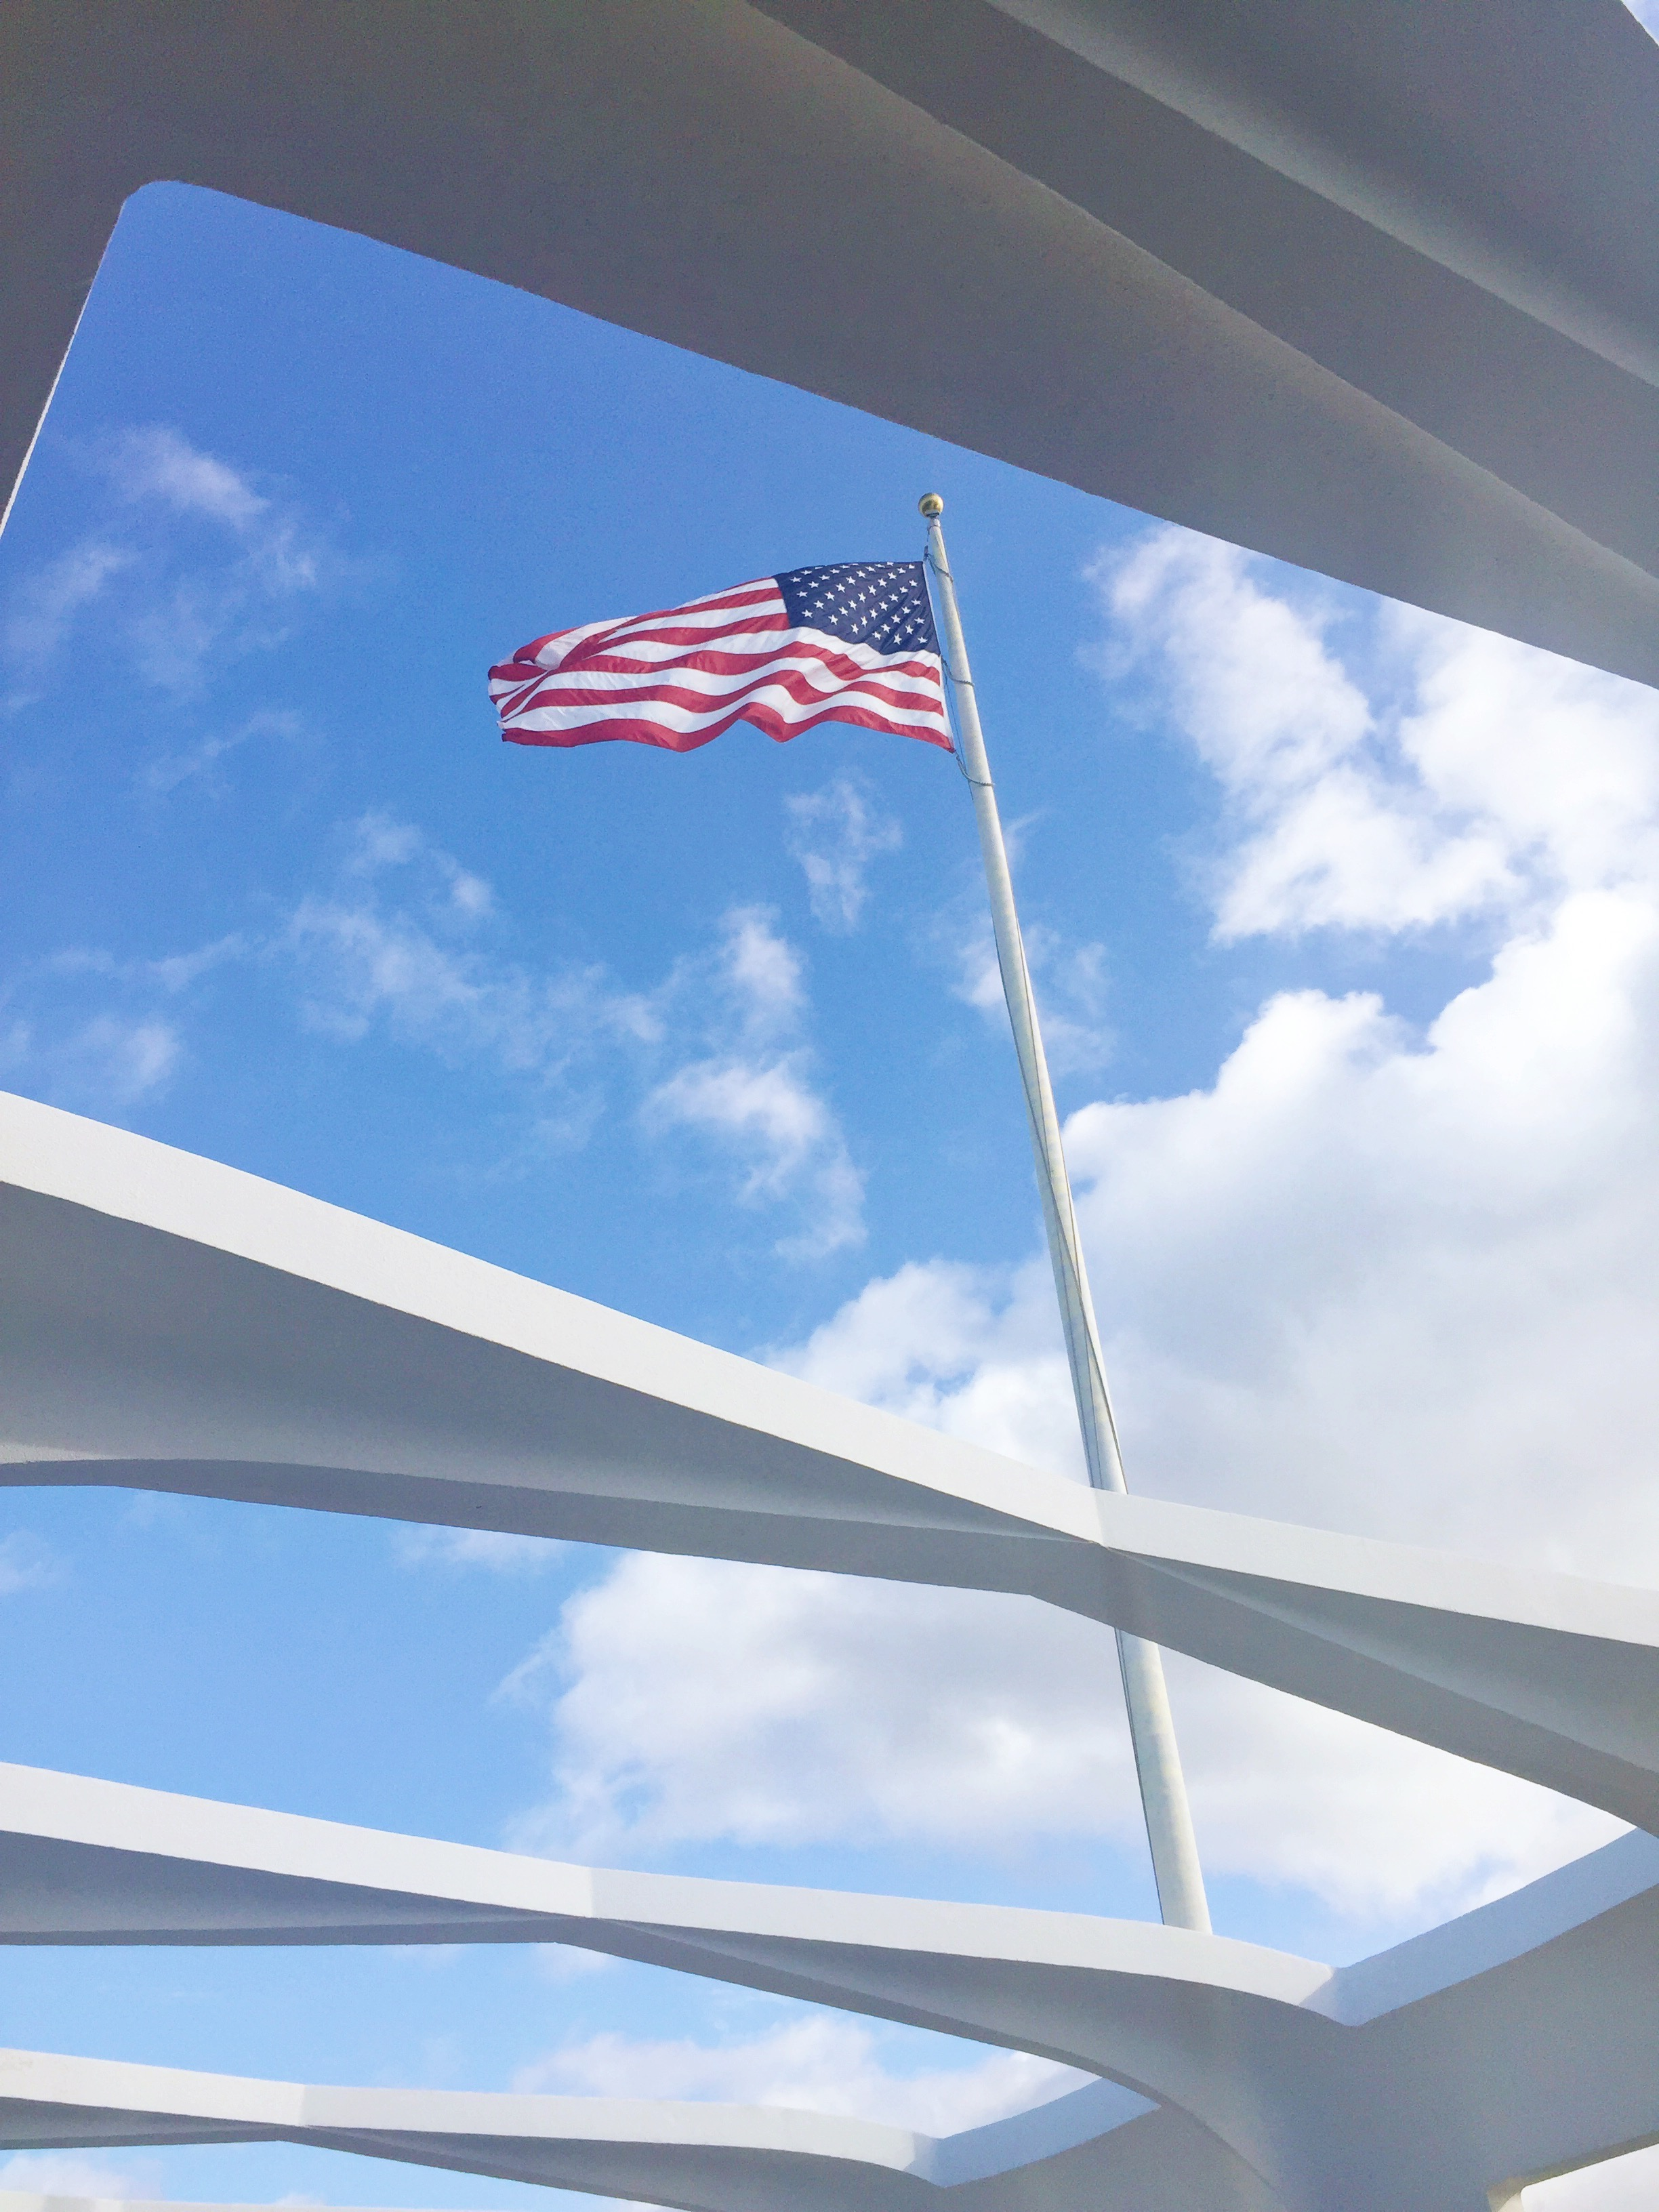 Pearl Harbor Memorial - USS Arizona - The Ultimate Hawaii Guide For Military Families - Hawaii Guide - Hawaii Must Do - Hawaii Itinerary - Oahu Itinerary - Maui - Kauai - Big Island Hawaii - Communikait by Kait Hanson